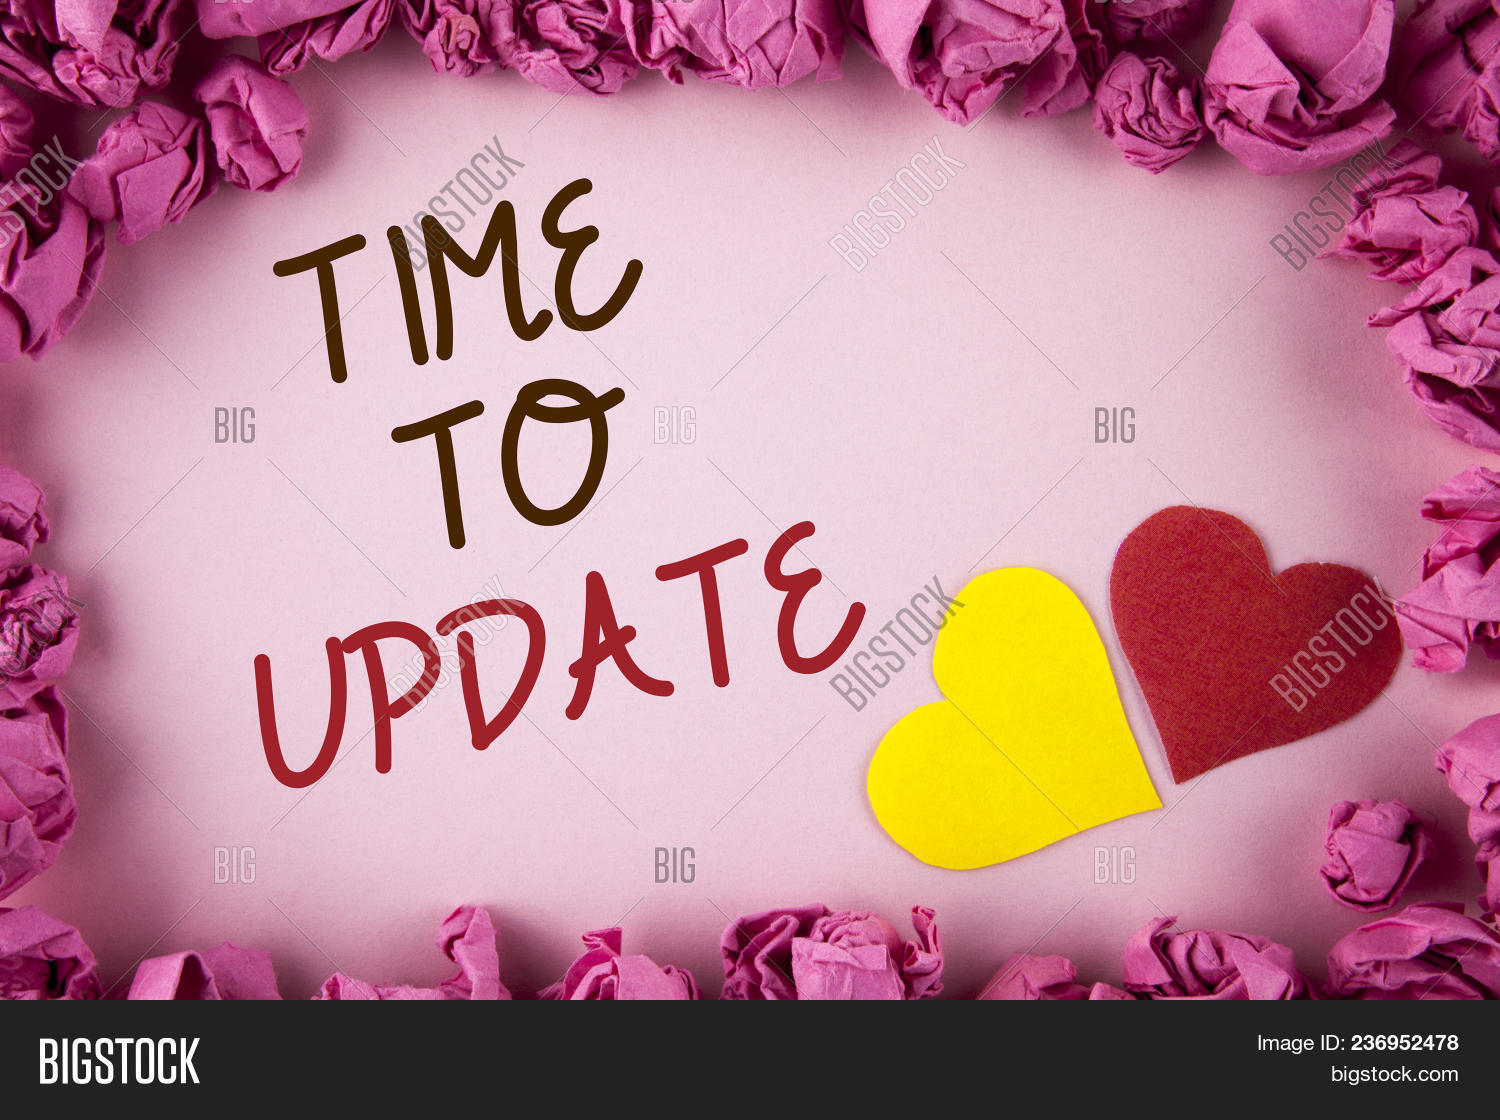 Word writing text Time To Update. Business concept for Renewal Updating Changes needed Renovation Modernization written plain background within Pink Paper Balls Hearts next to it.